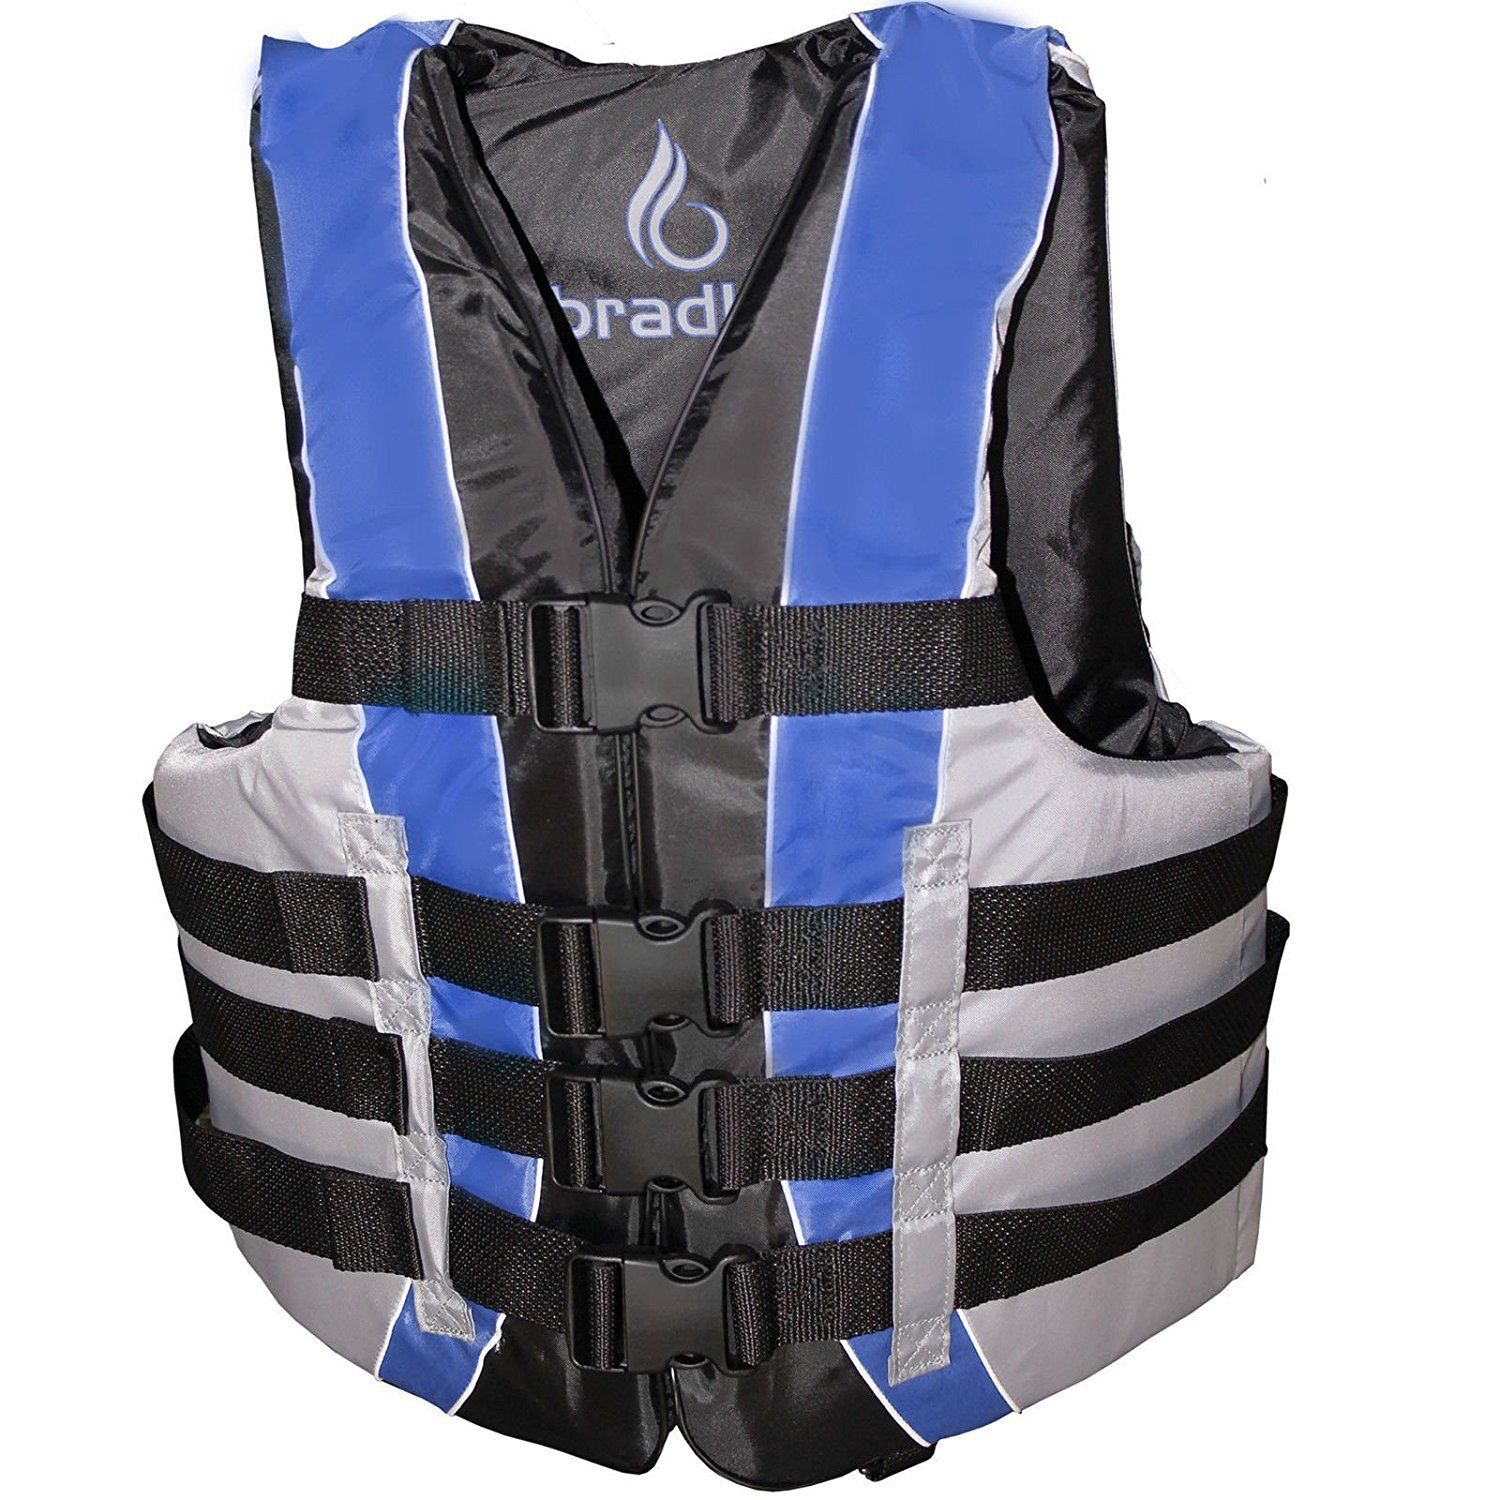 Click here to buy Bradley Fully Enclosed Deluxe 4-Buckle Adult Life Jacket Vest by Bradley.